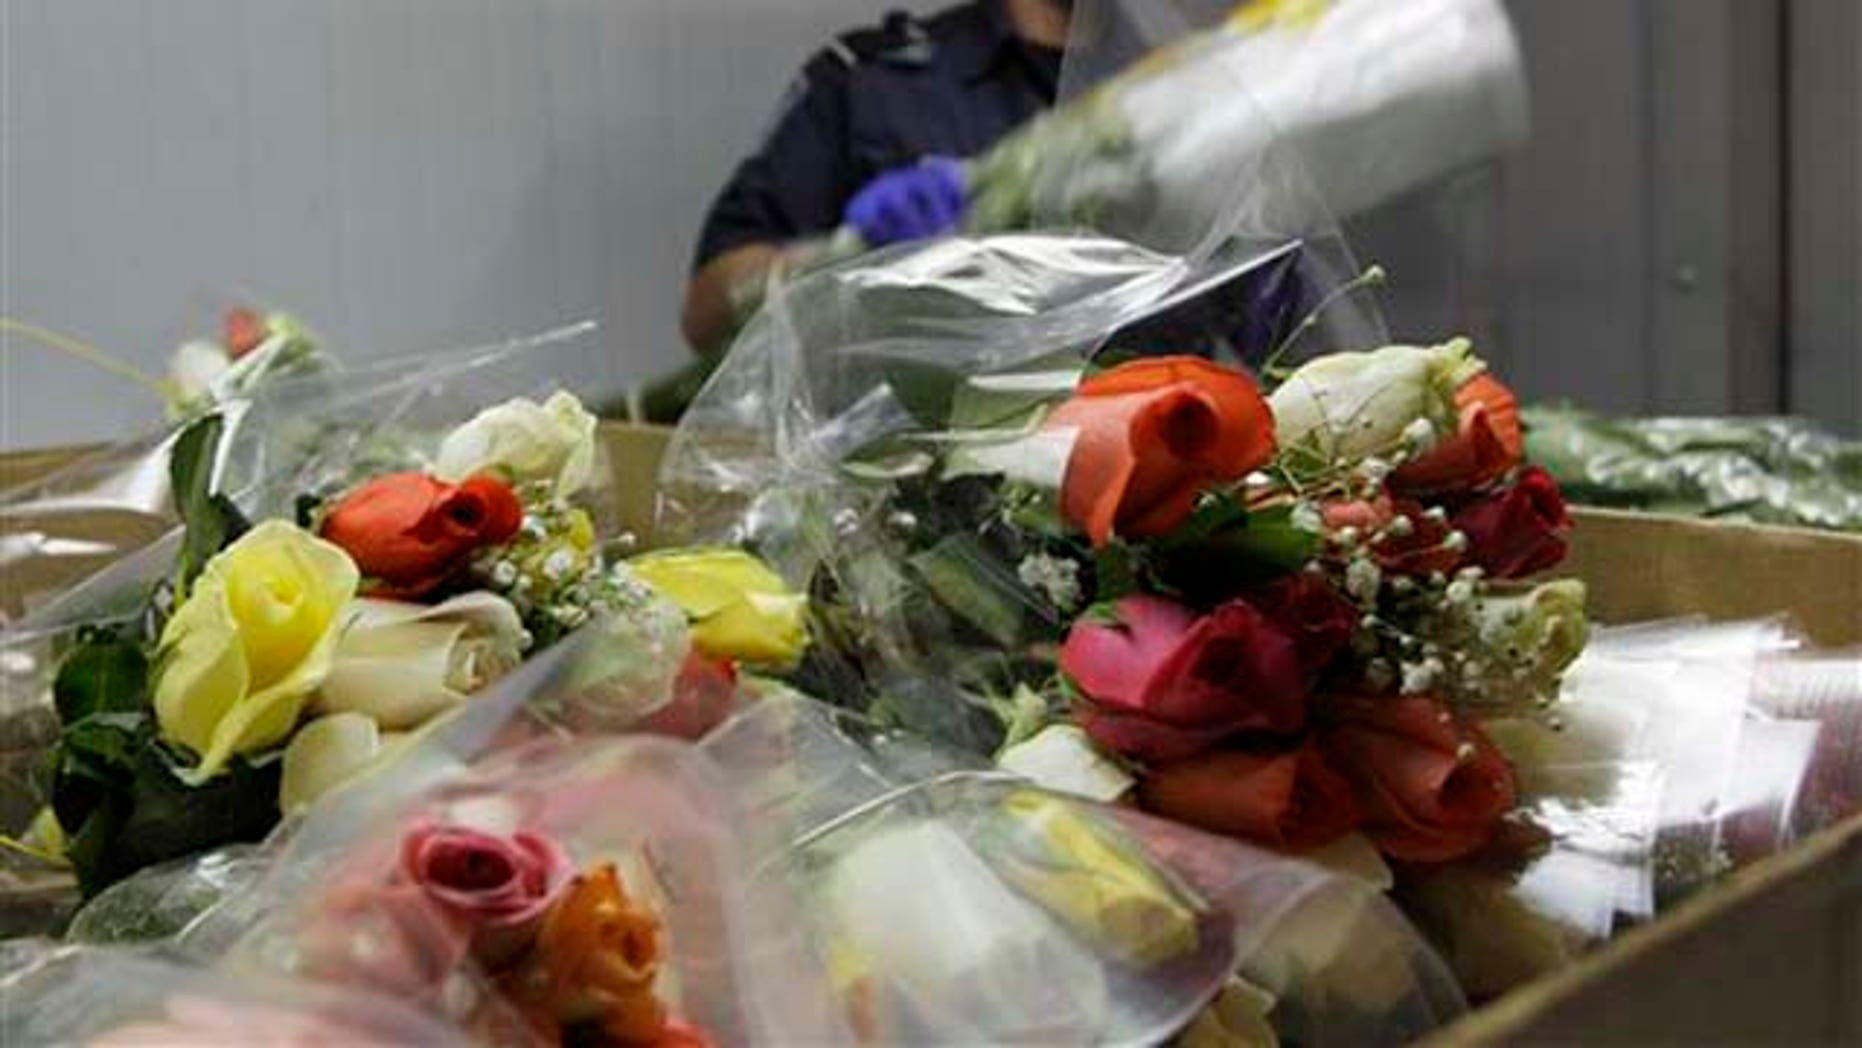 An U.S. Customs agent checks roses Thursday, Feb. 3, 2011 at Miami International Airport.  Amid the peak Valentine's Day flower season, U.S. agents in Miami are working overtime to make sure pretty love bouquets are not used as transportation by exotic South American pests or cocaine traffickers. More than eight out of every 10 cut flowers imported to the U.S. come through Miami International Airport. Colombia and Ecuador are the main sources of imported flowers, with Colombia also a leading cocaine producer.   (AP Photo/J Pat Carter)